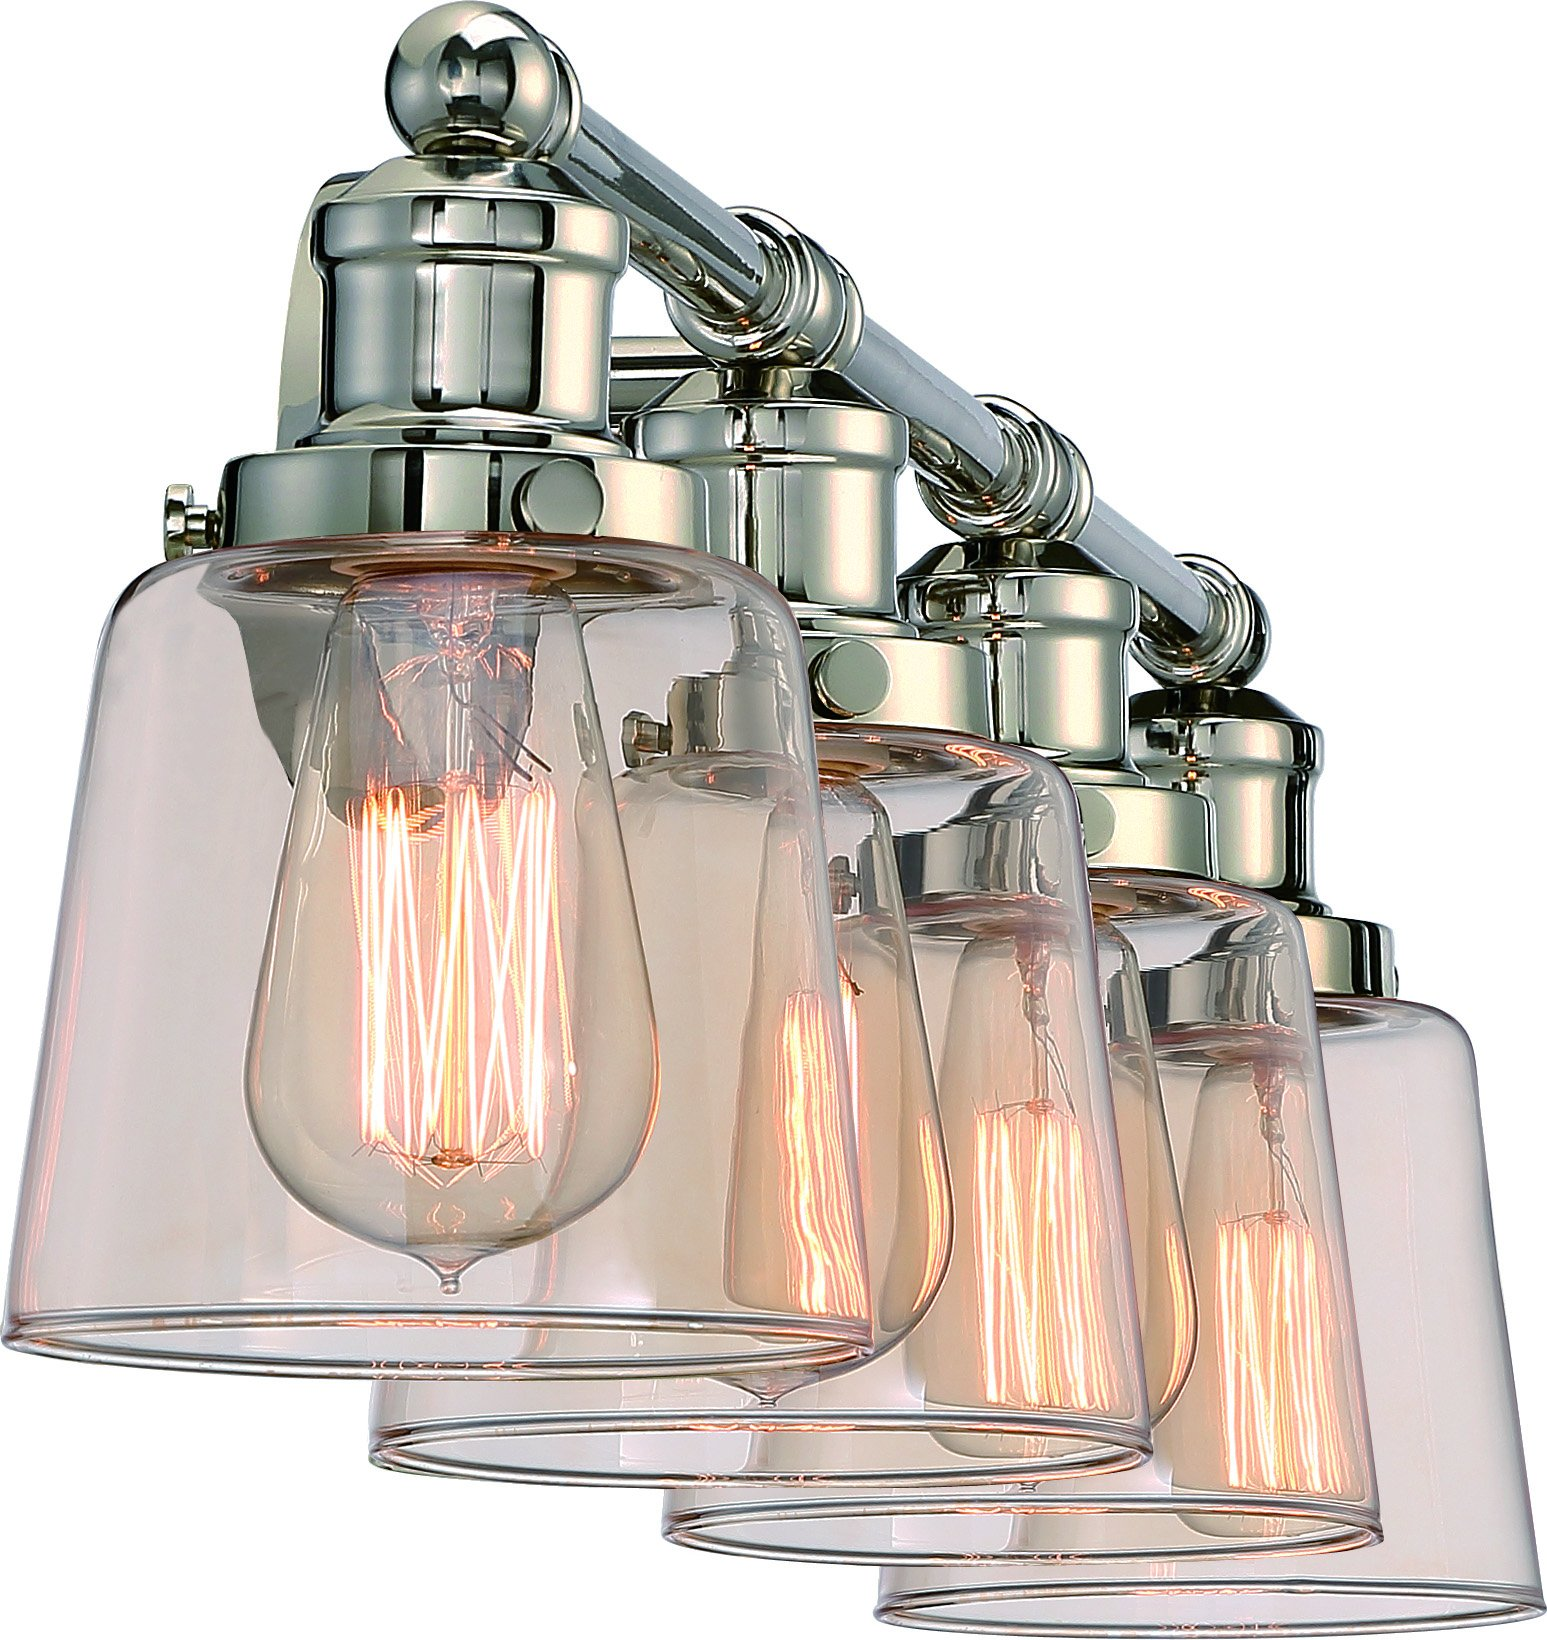 Lighting -  -  - 81pNu2oC52L -